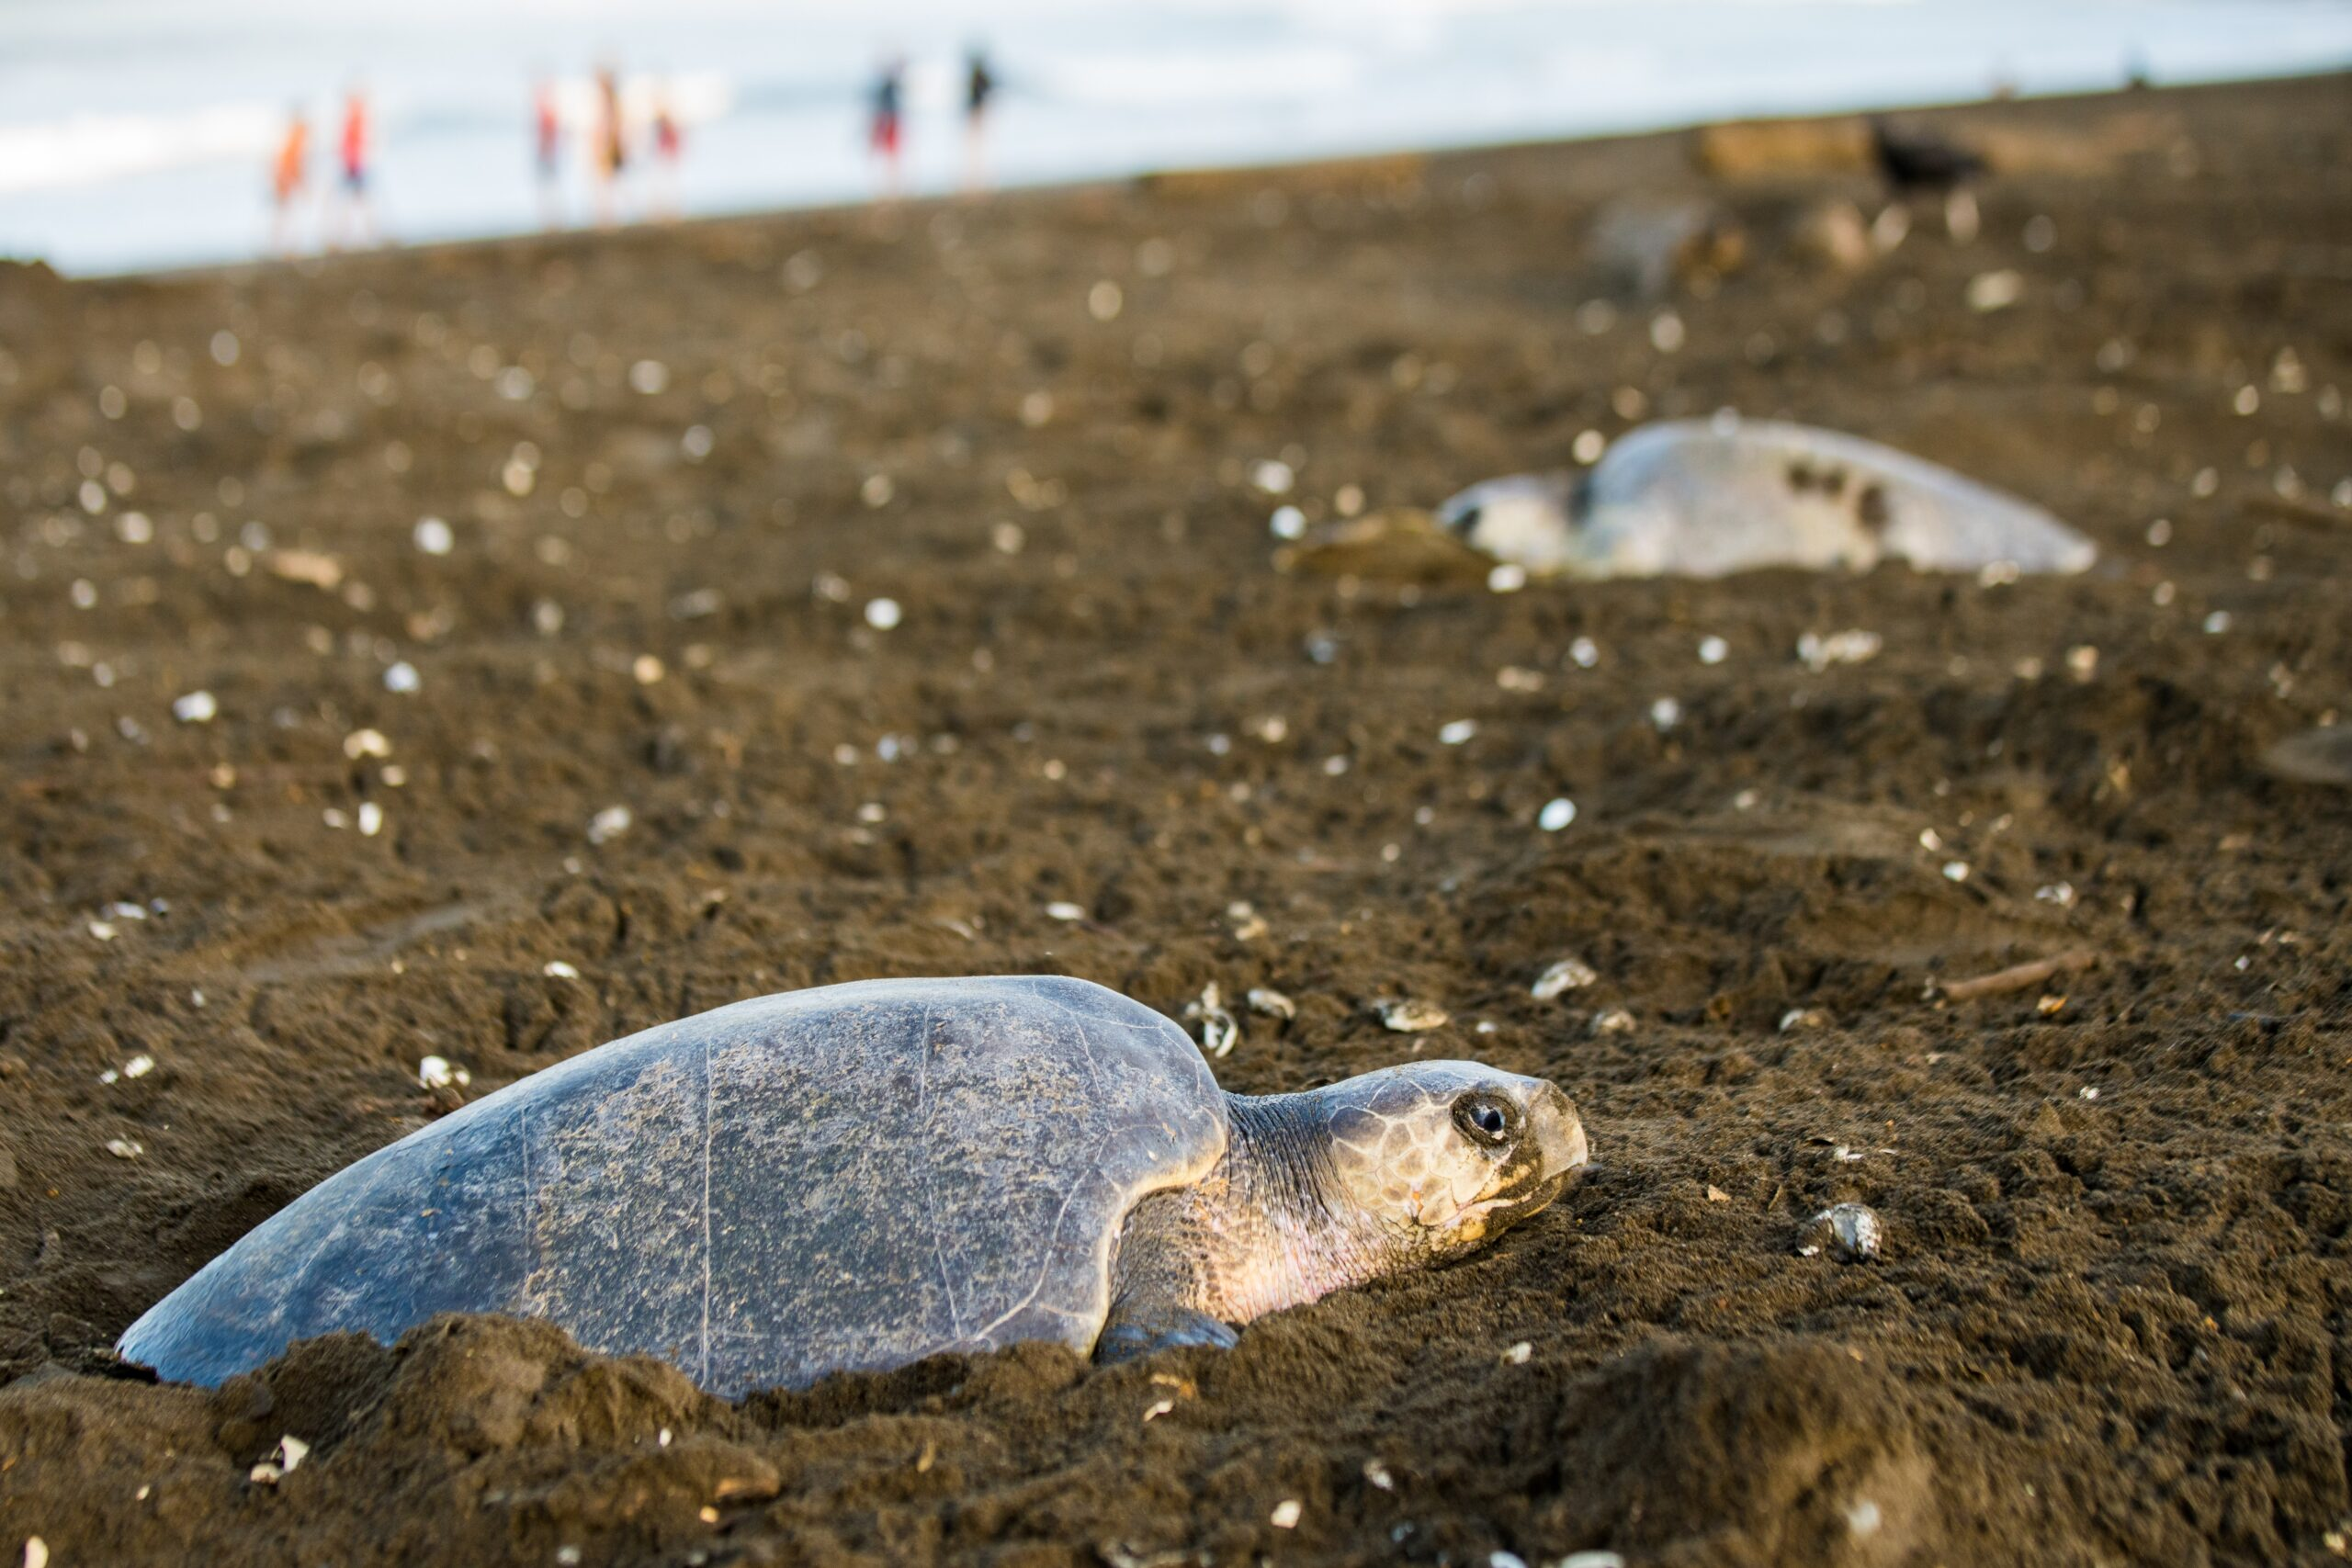 Amid COVID-19 Outbreak, Groups Offer Emergency Fundingto Protect Nesting Sea Turtles